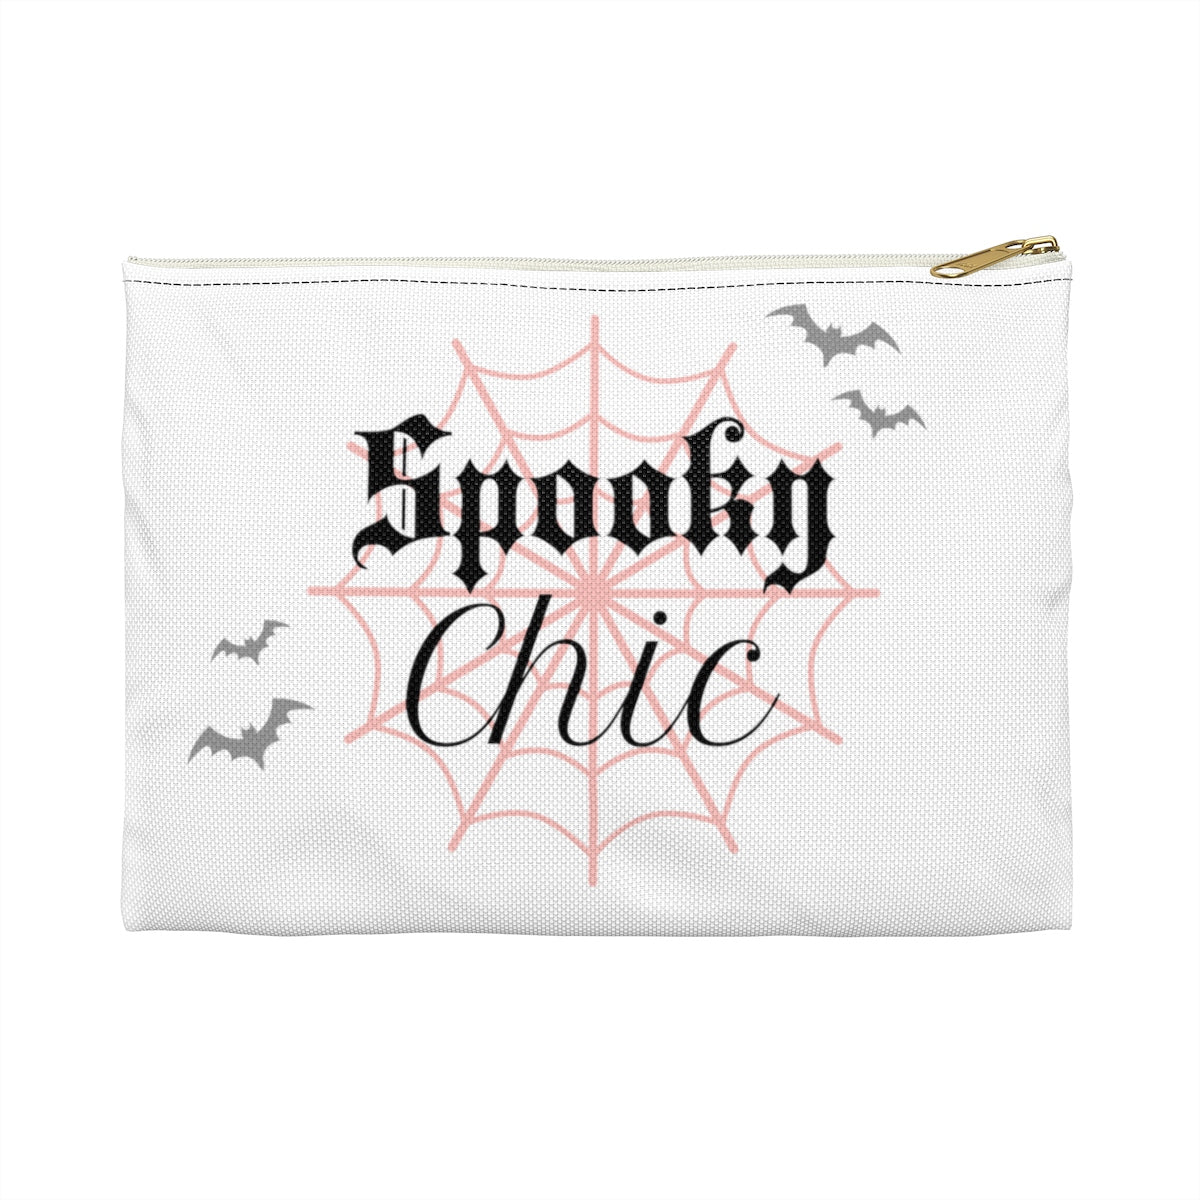 Spooky Chic Accessory Pouch